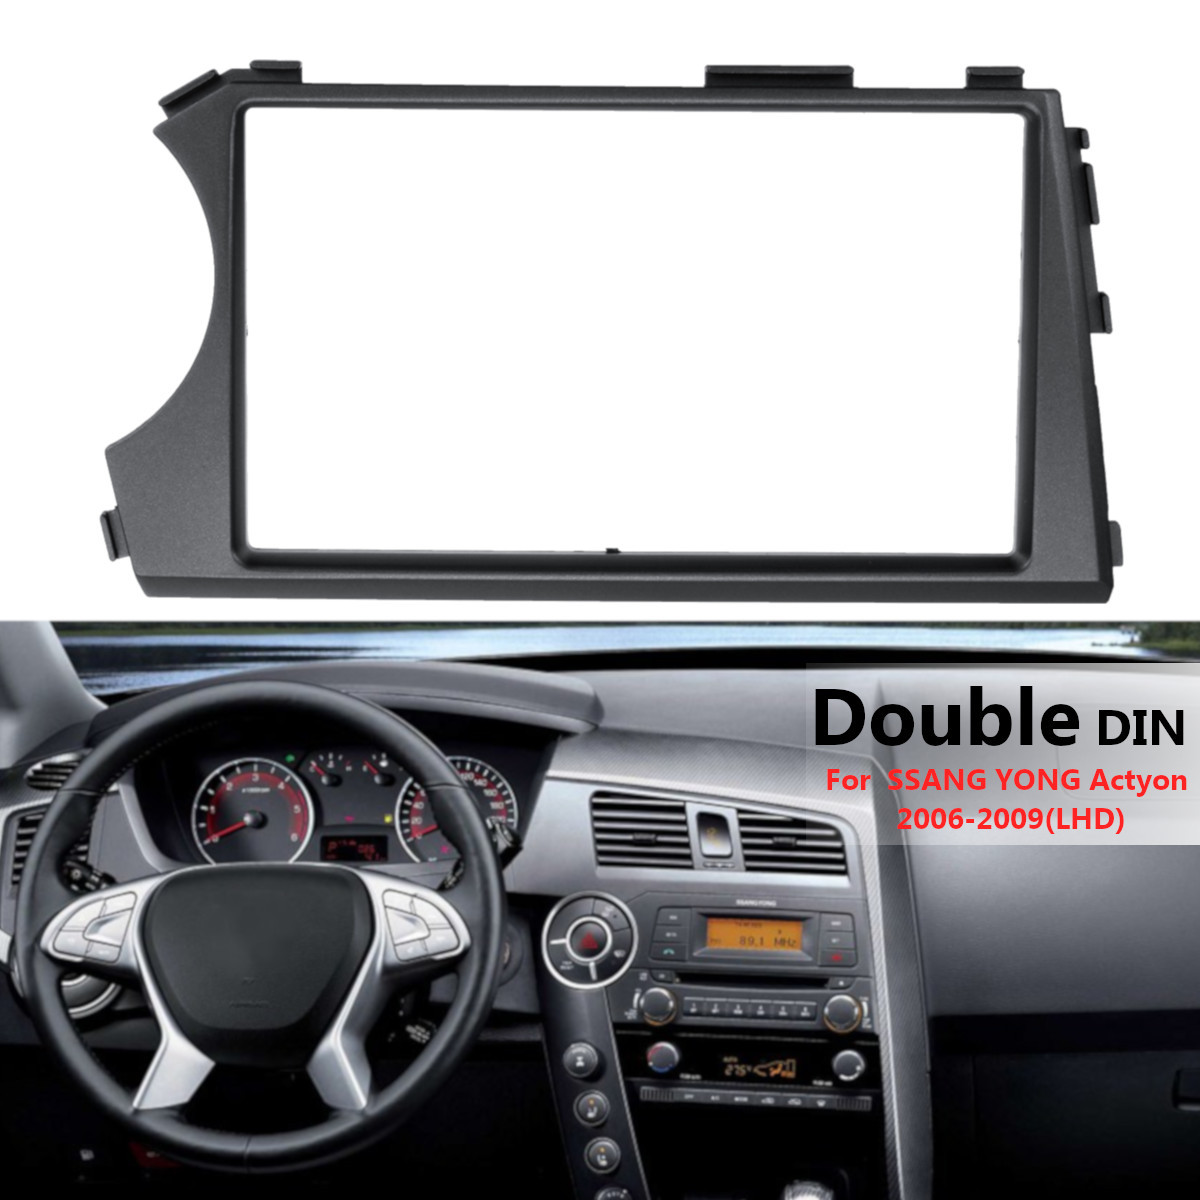 2 Din Car Stereo Radio Fascia Panel Plate Frame CD Dashboard Panel Audio Frame for SSANG YONG Actyon 2006-2009 Left Hand Drive